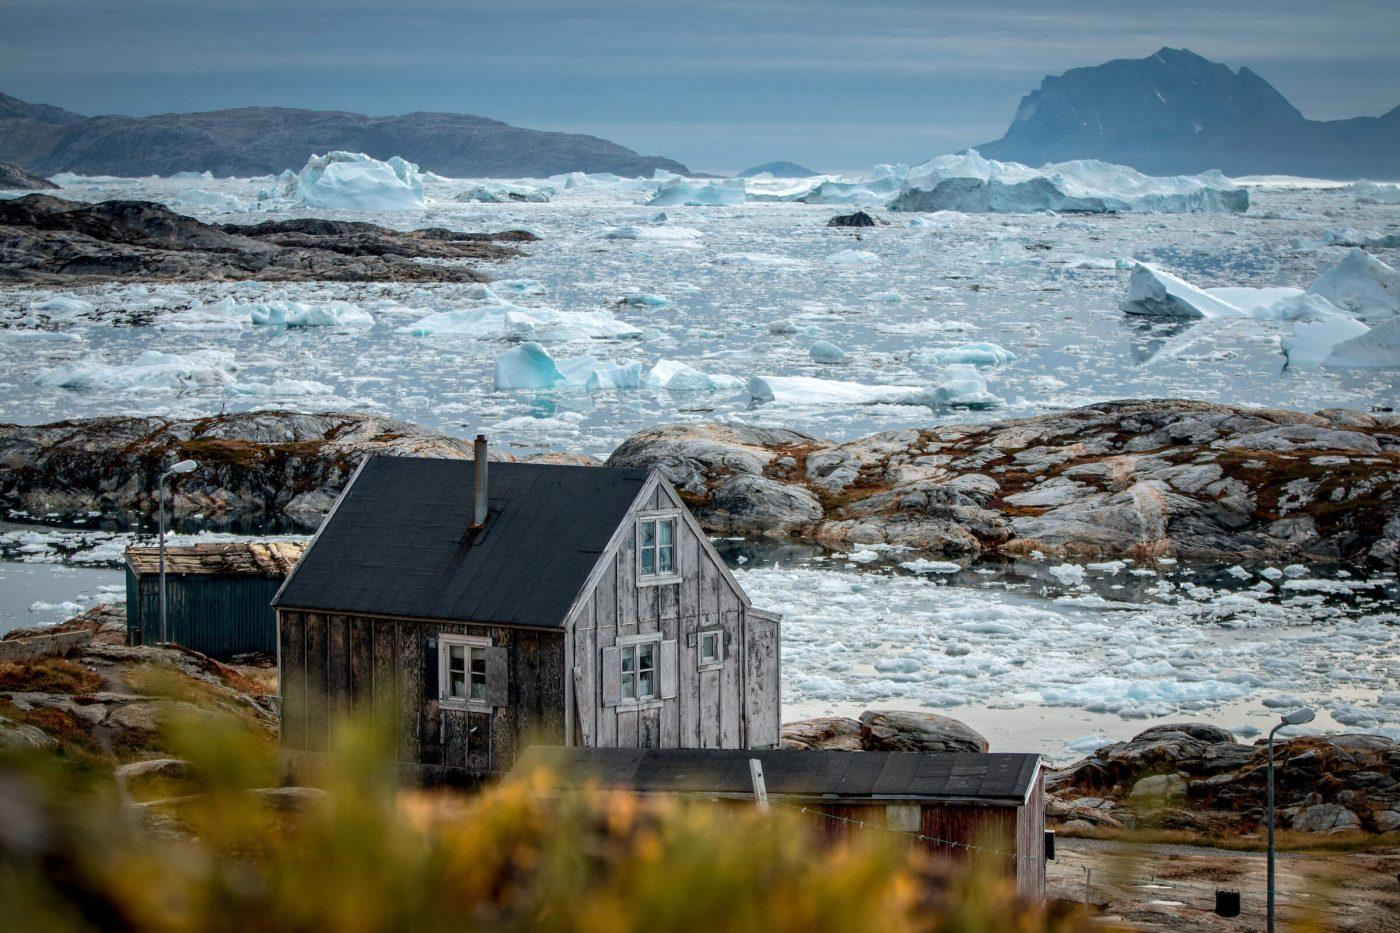 Tiniteqilaaq in East Greenland is located by the edge of the highly productive ice fjord Sermilik in East Greenland